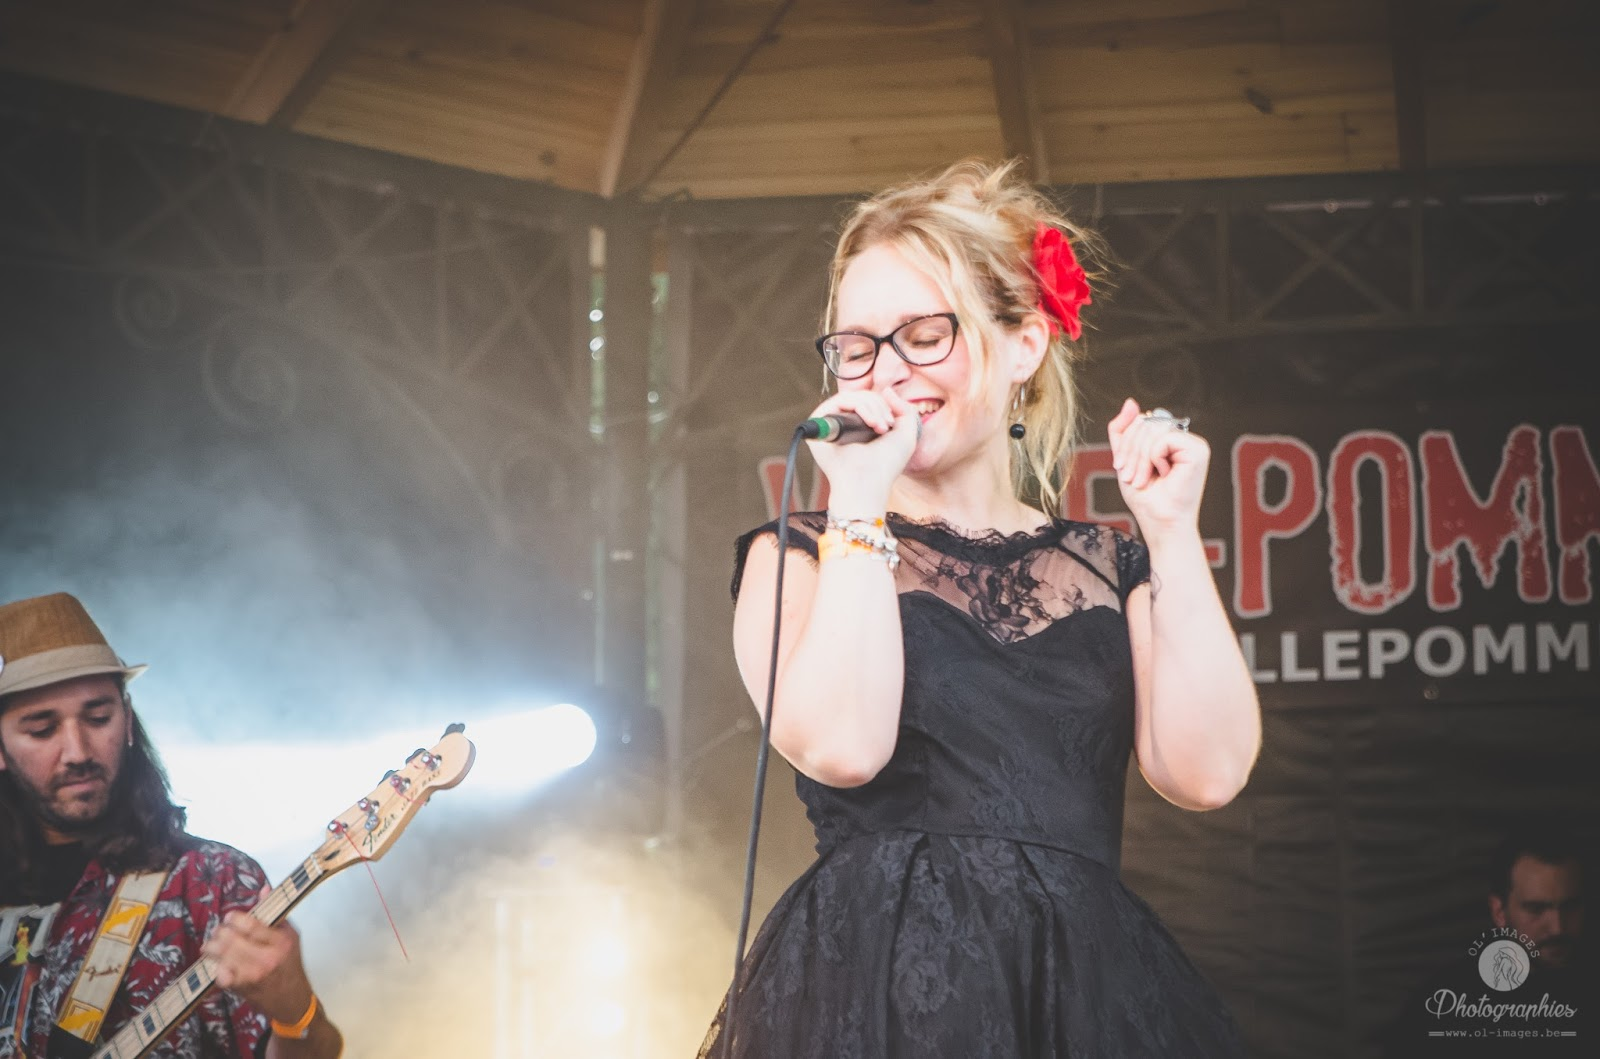 VillePomRock2017_26082017_OL-Images.be--53.jpg